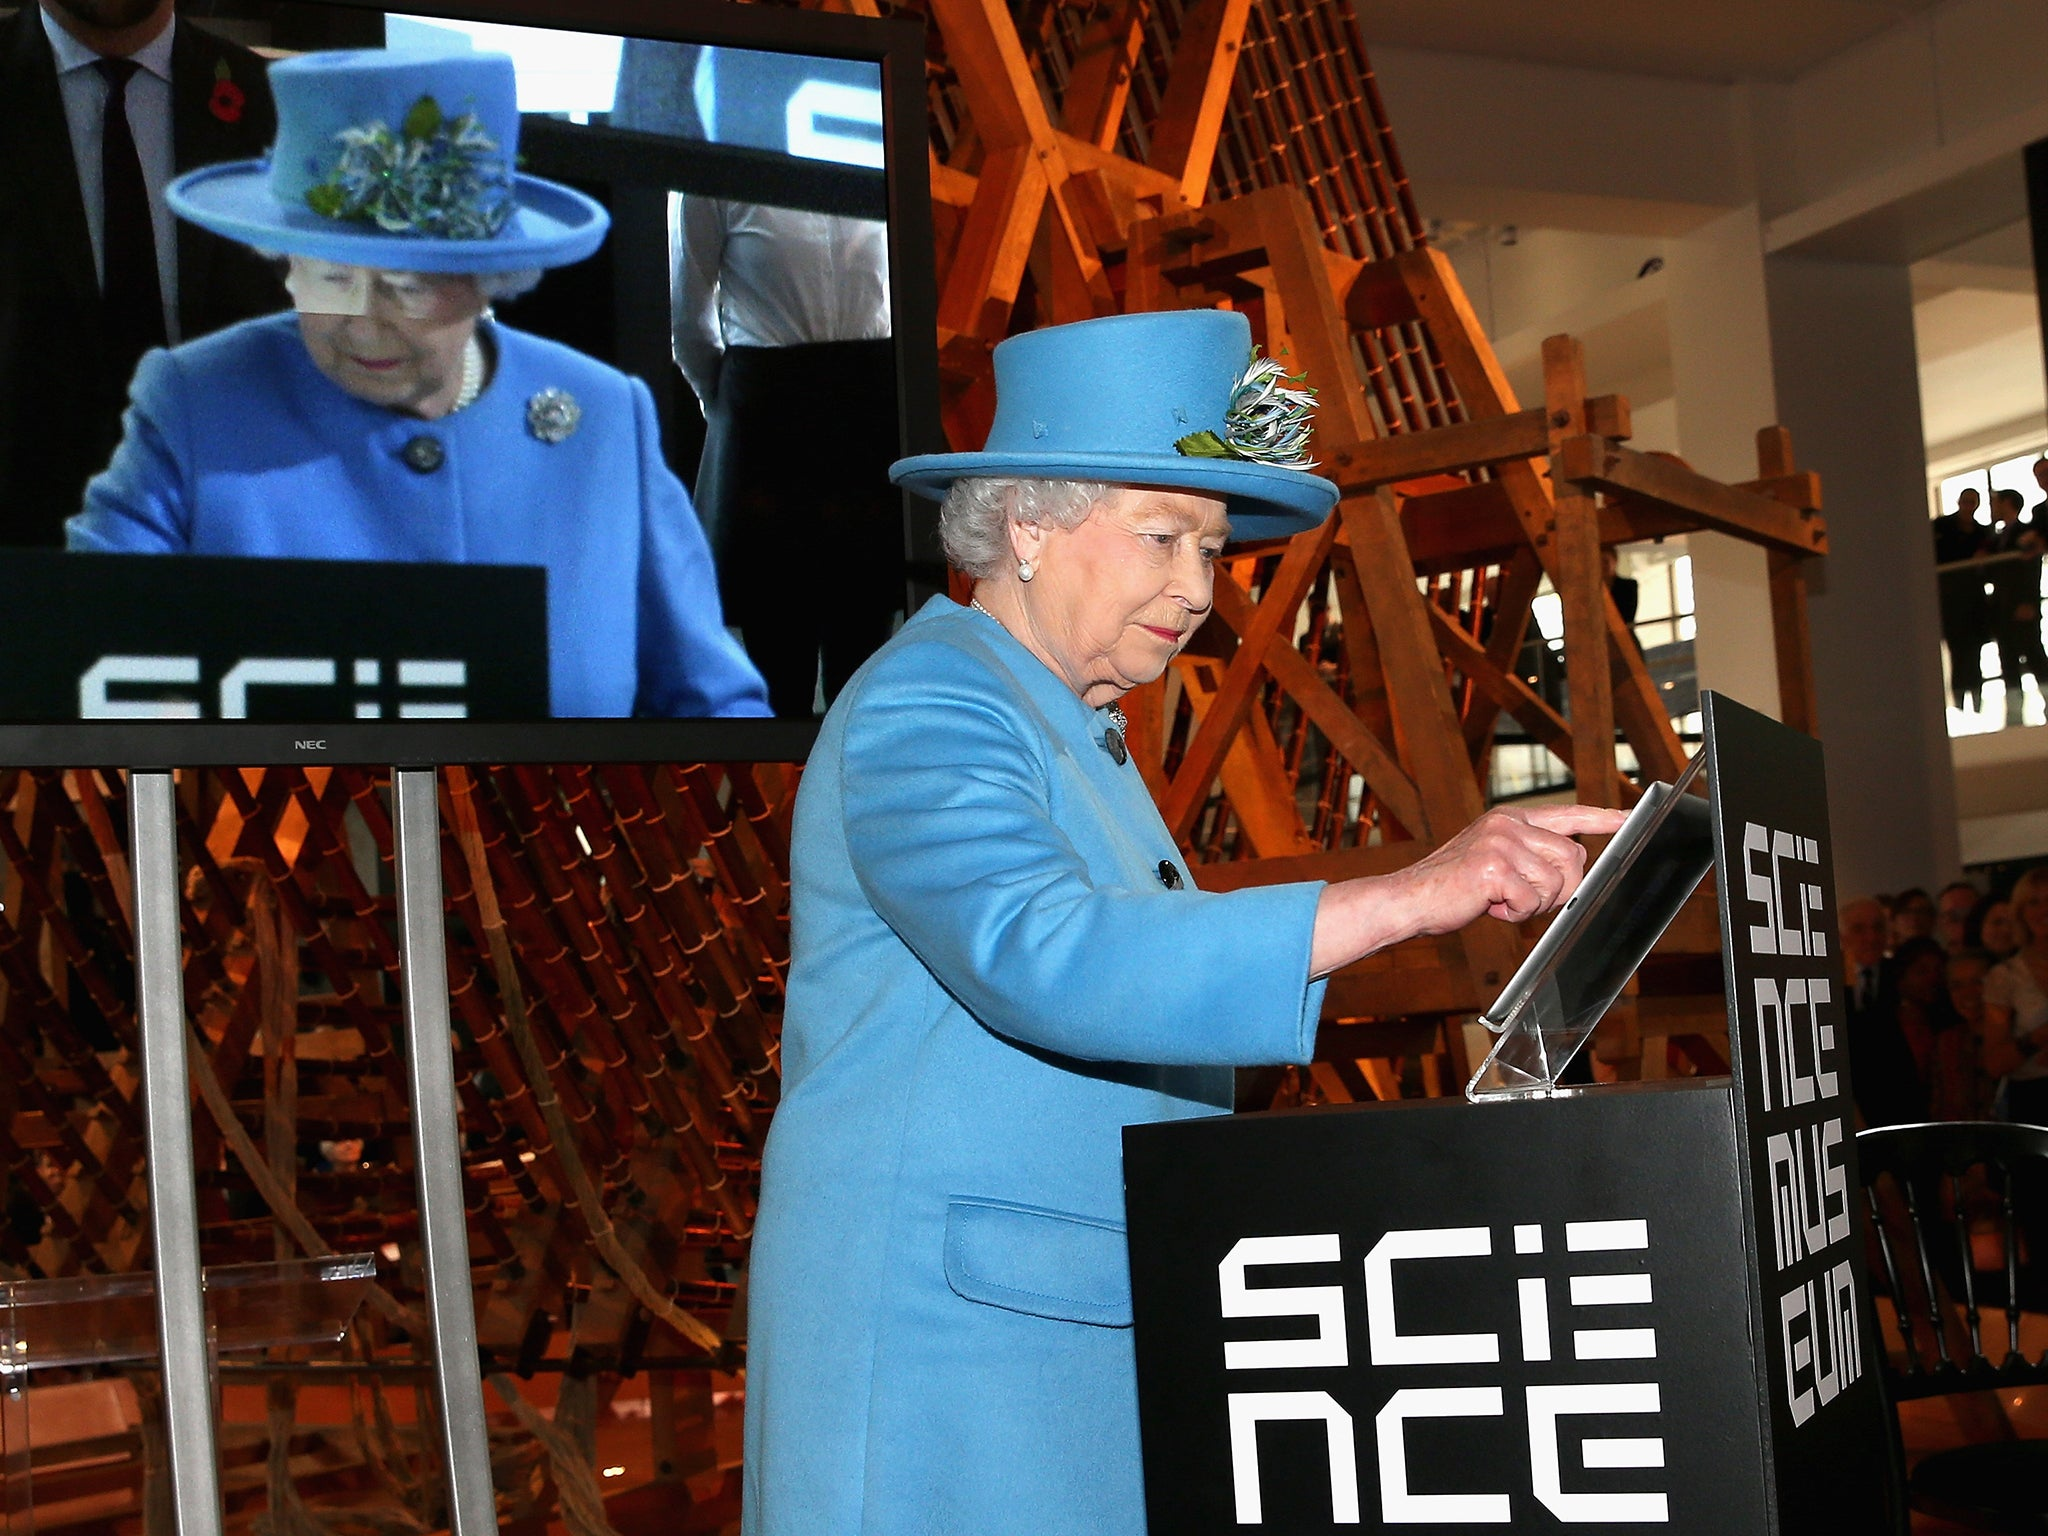 Queen's first tweet: Reply telling Her Majesty to 'f*** off' is broadcast on BBC News